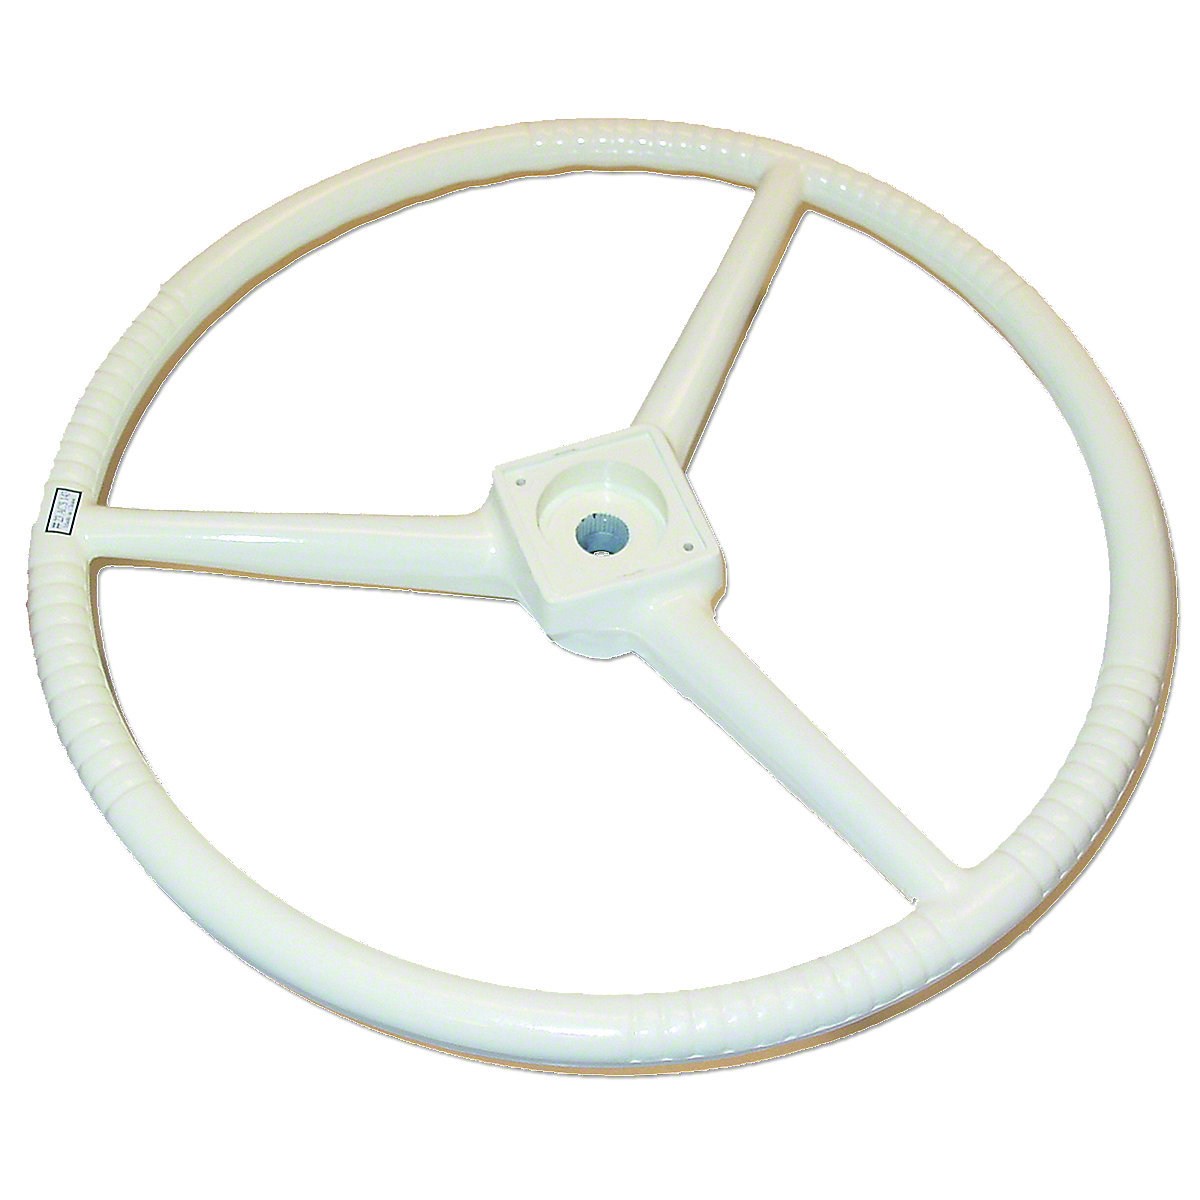 17-1/2 Creme Steering Wheel For Allis Chalmers: D10, D12, D14, D15, D17, D19, D21.